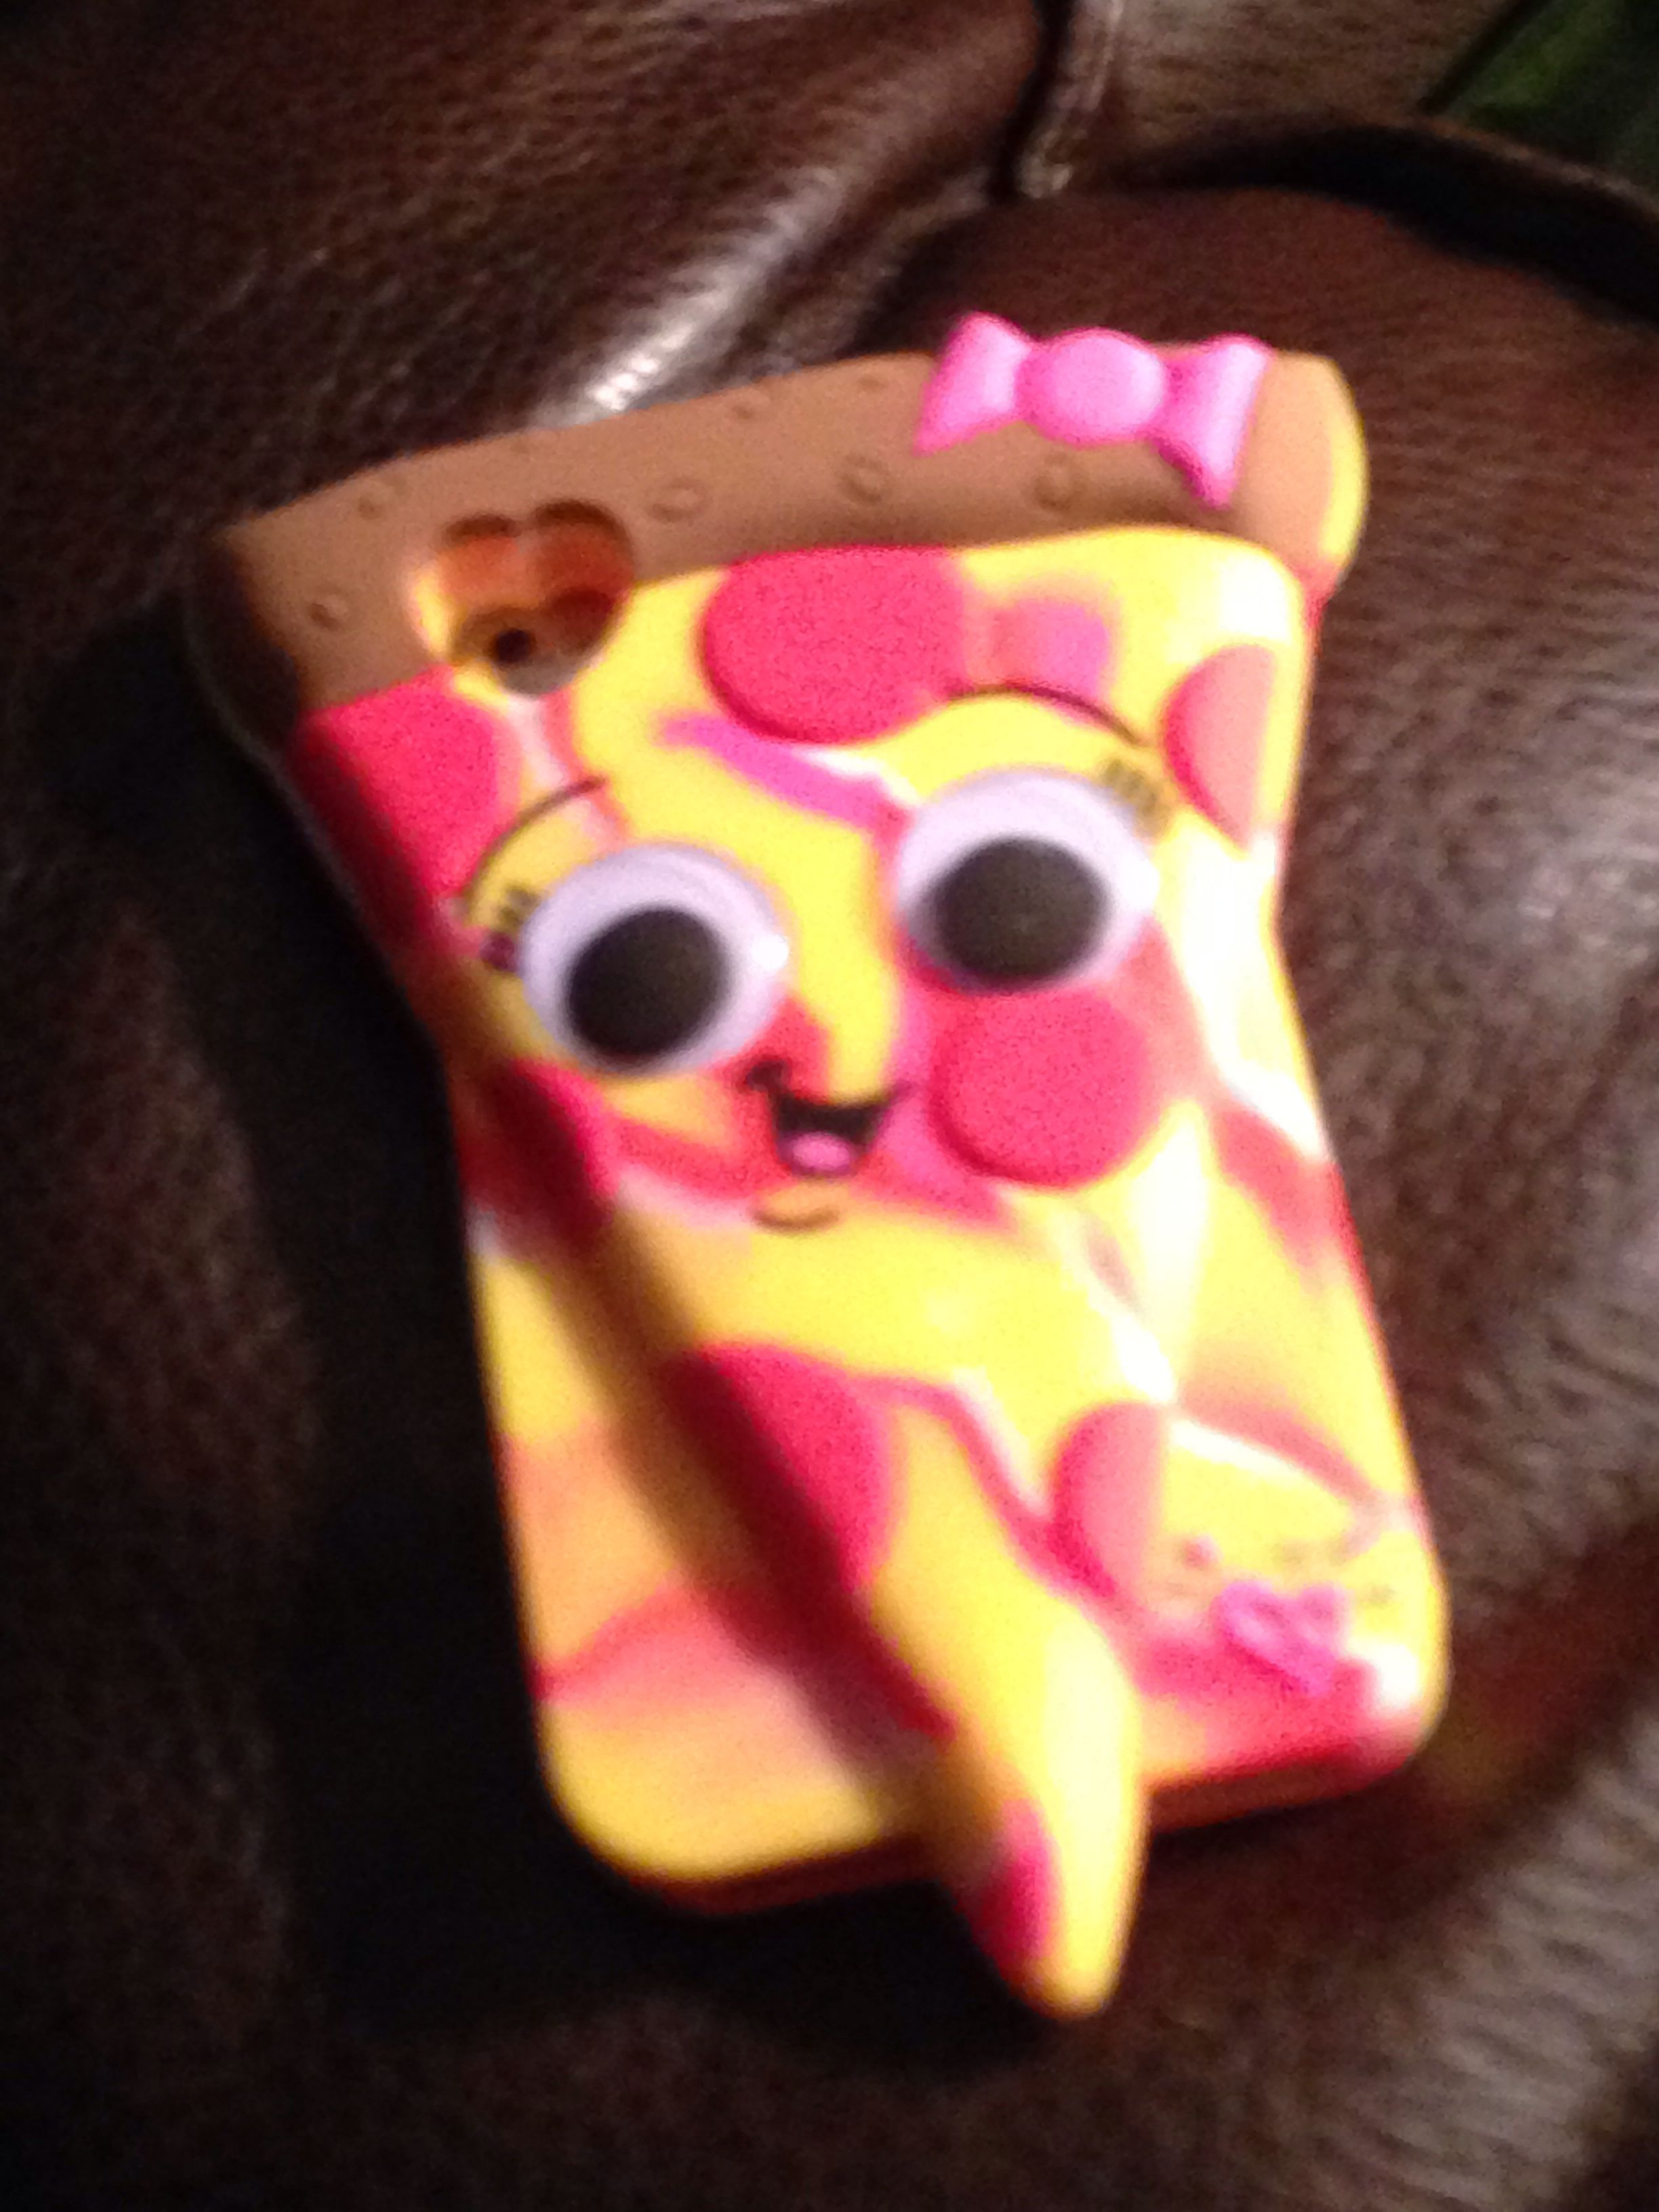 new arrival b581a da352 Cute I pod case from justice this is only made for the fourth ...